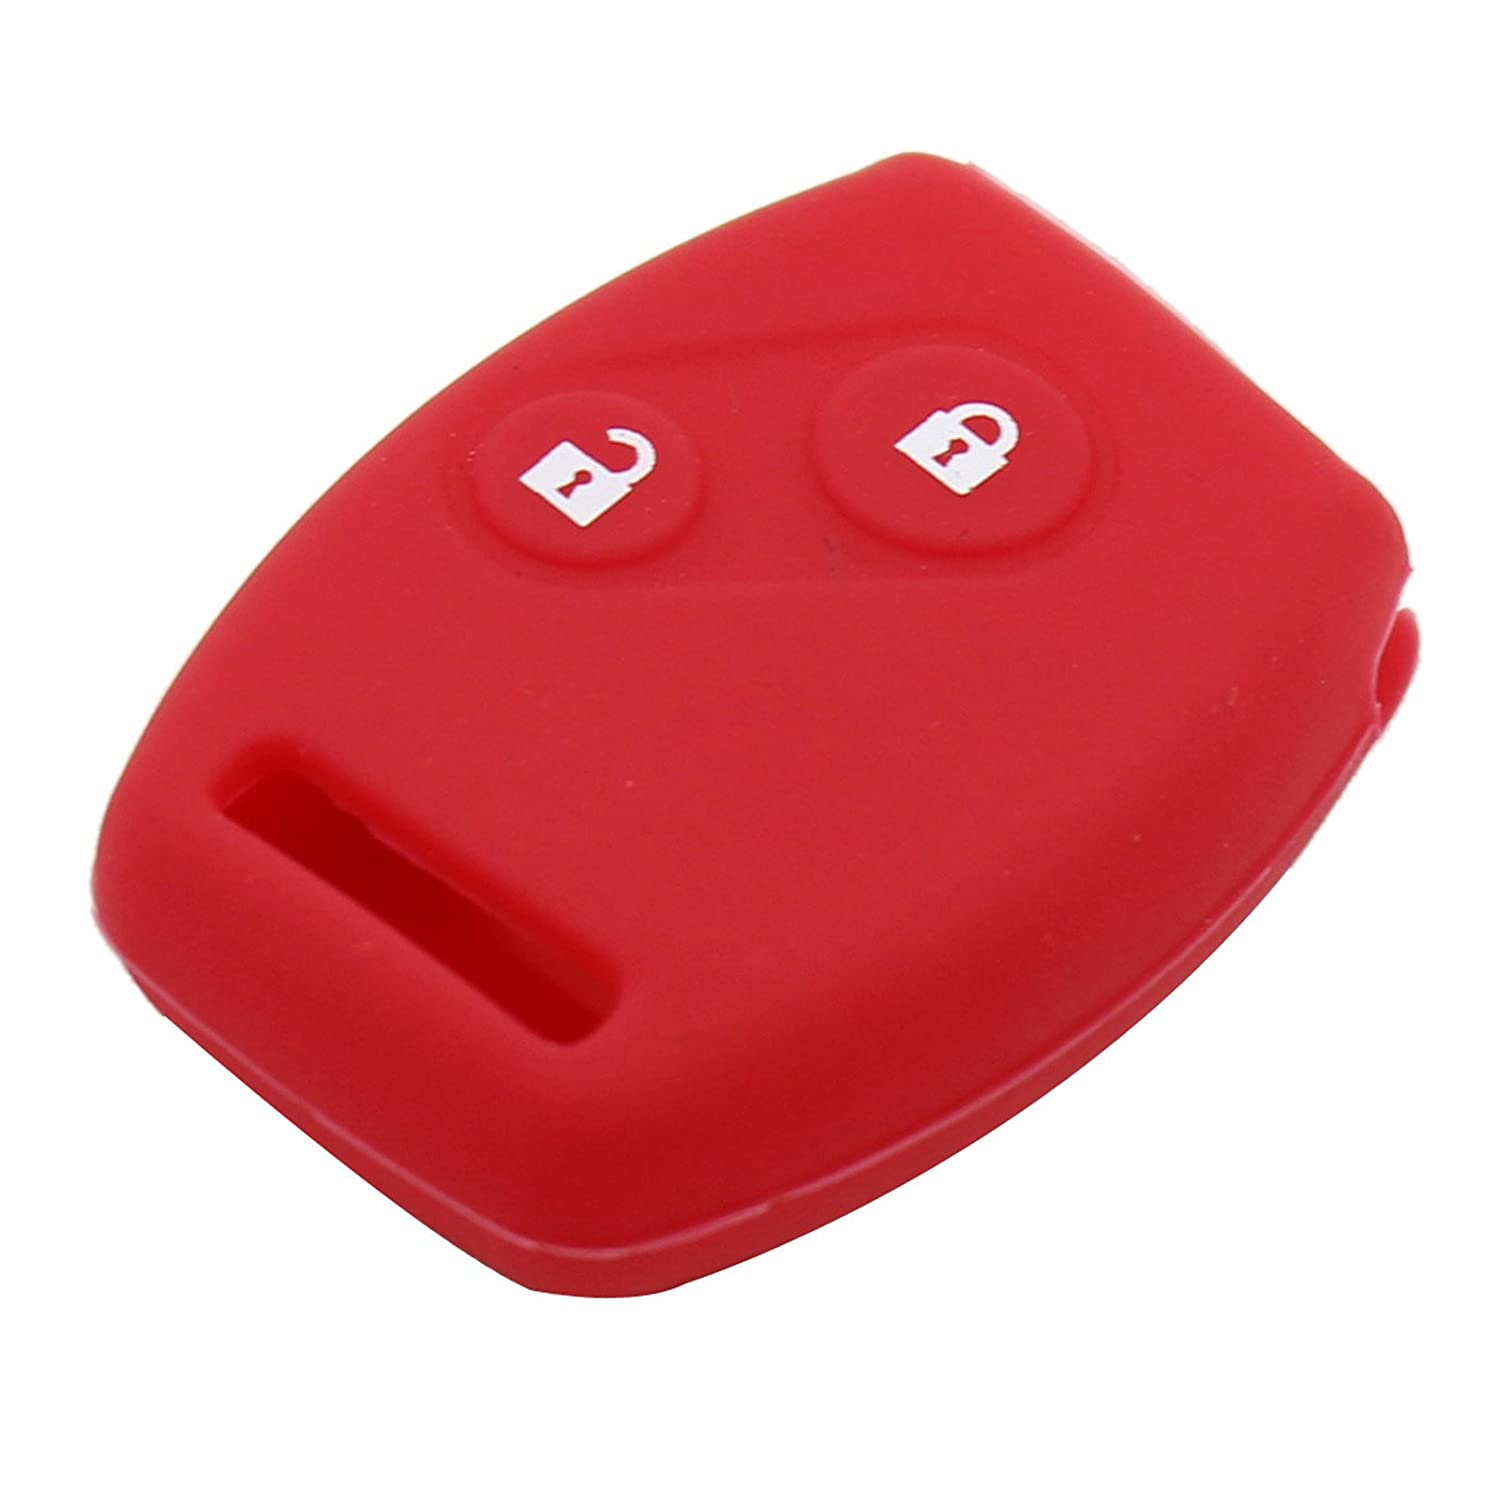 red Heart Horse 2 Button Remote Car Key Fob Silicone Case Shell Cover Compatible with Honda Accord Civic CRV Pilot Replacement